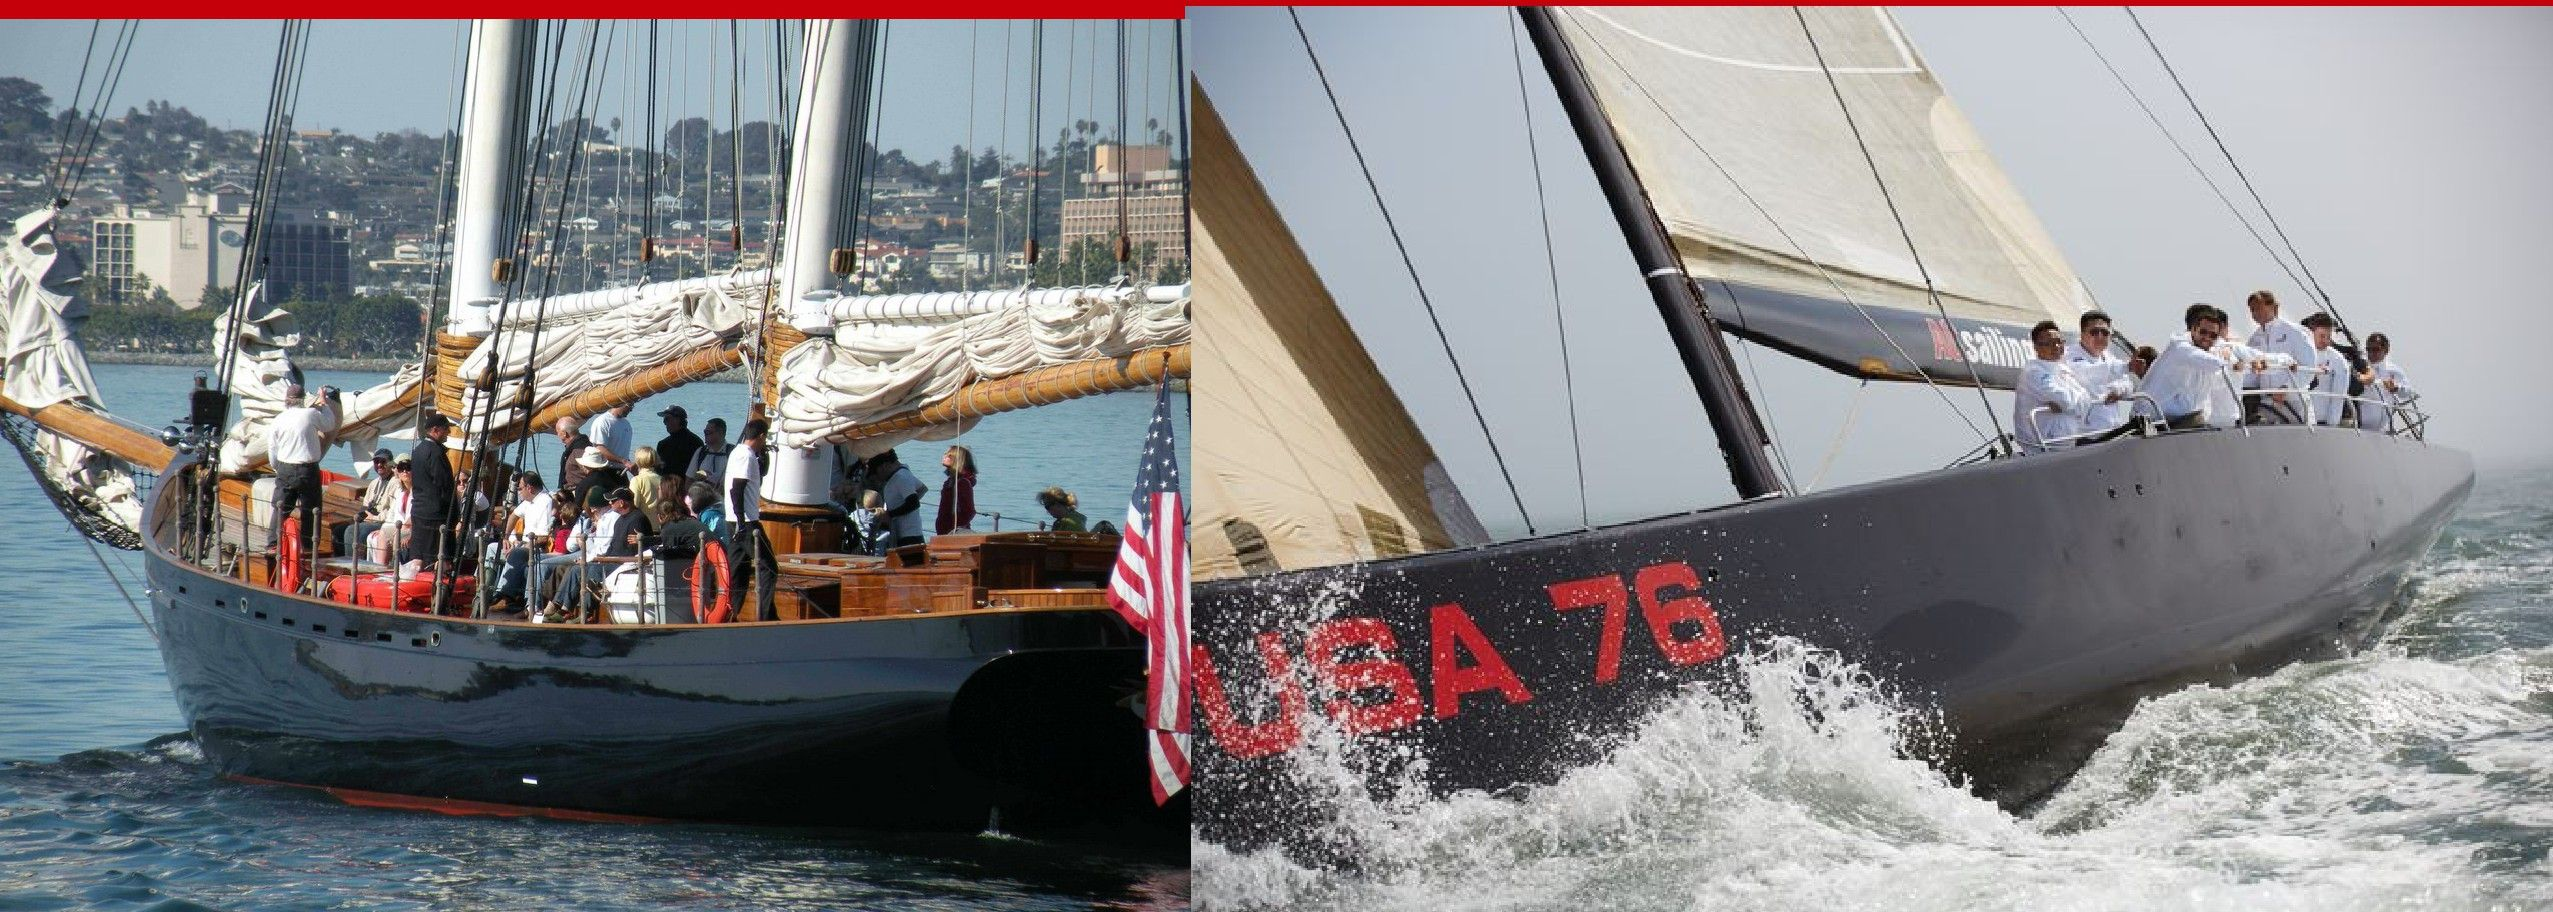 Find the most suitable sailboat_charter to enjoy your